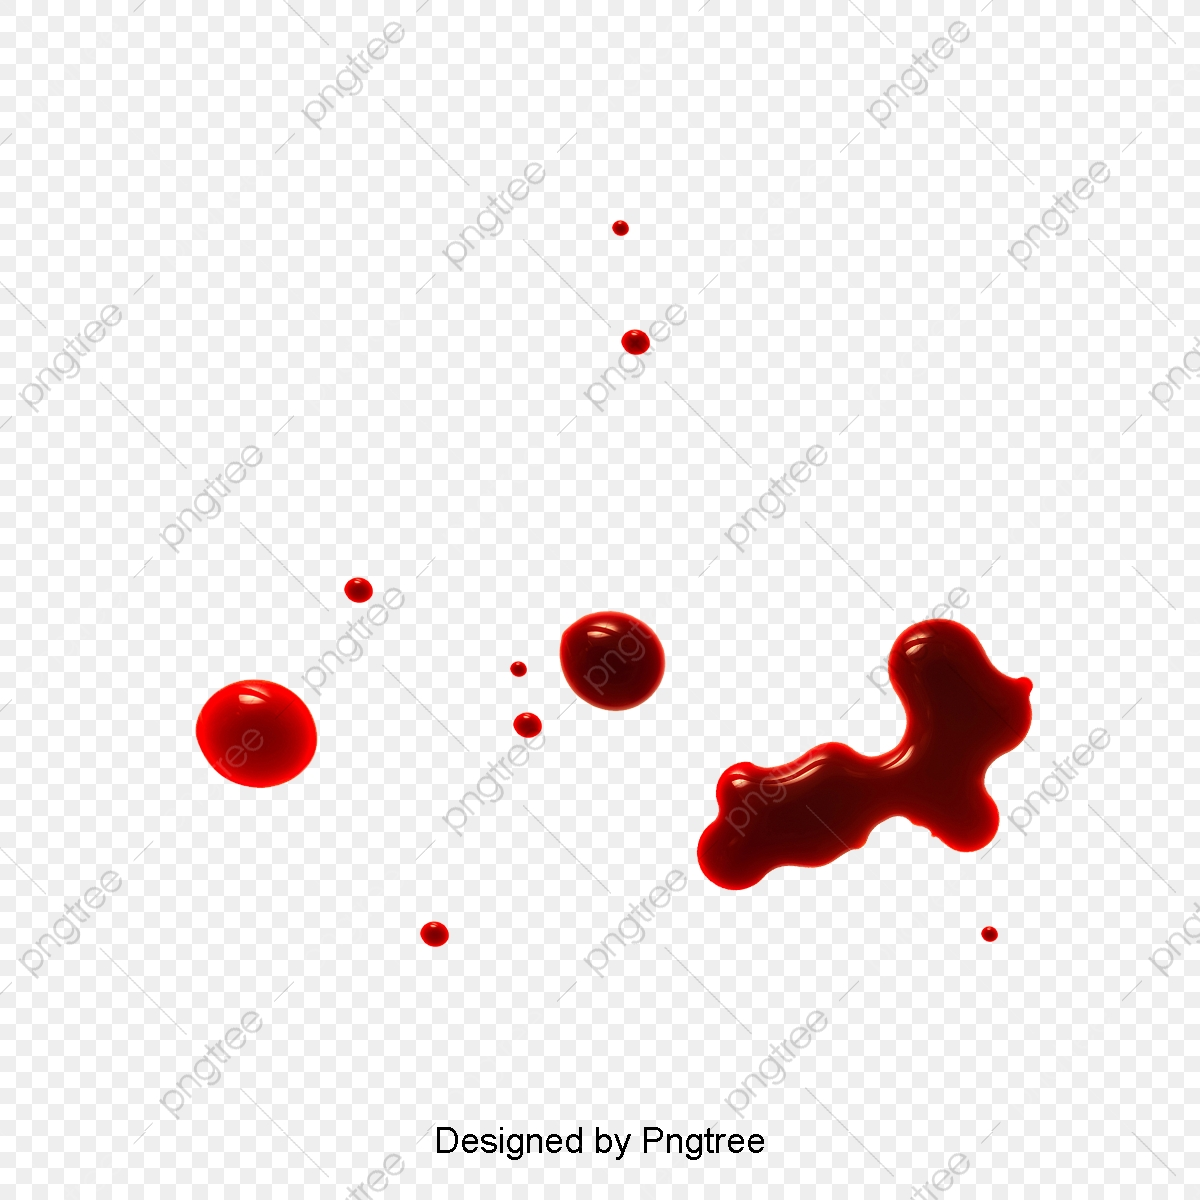 Realistic Drops Of Blood, Blood Clipart, Blood Drop